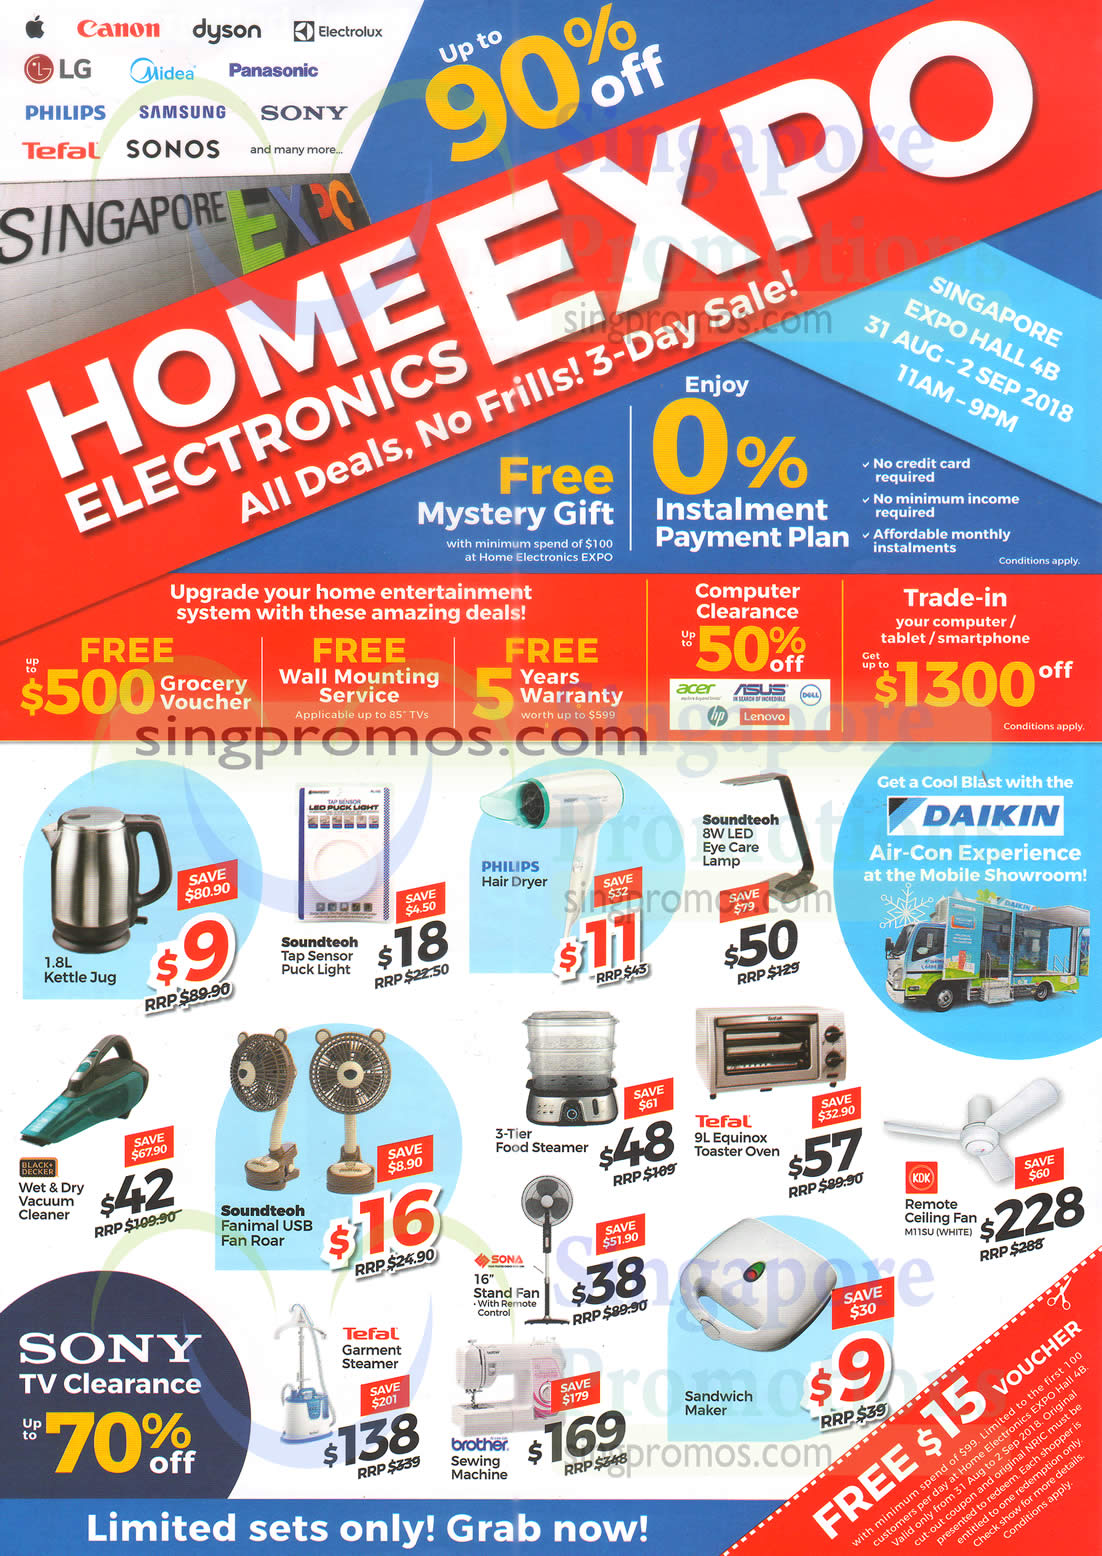 Home Electronics EXPO by Megatex from 31 Aug – 2 Sep 2018